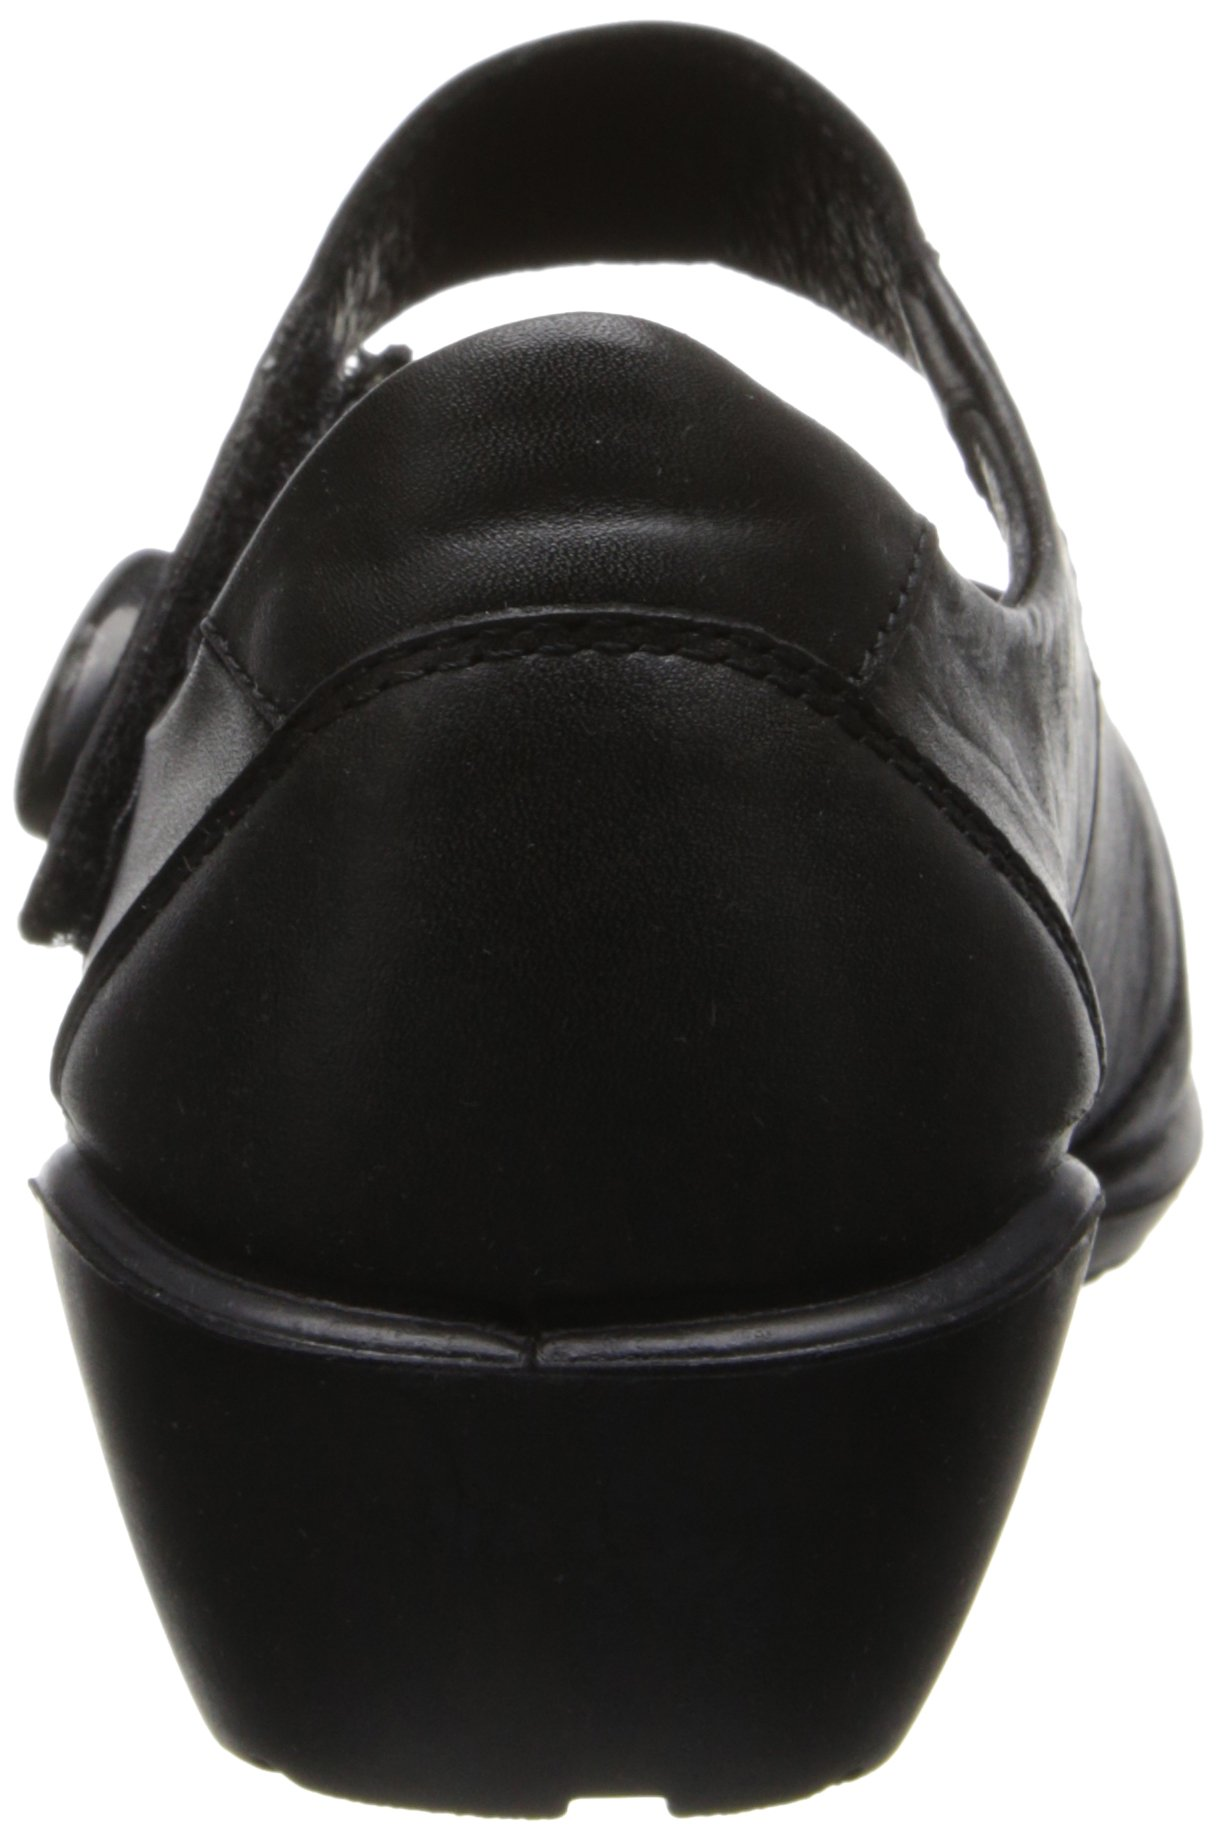 Romika Women's Citylight 87 Mary Jane Flat,Black,39 BR/8-8.5 M US by Romika (Image #2)